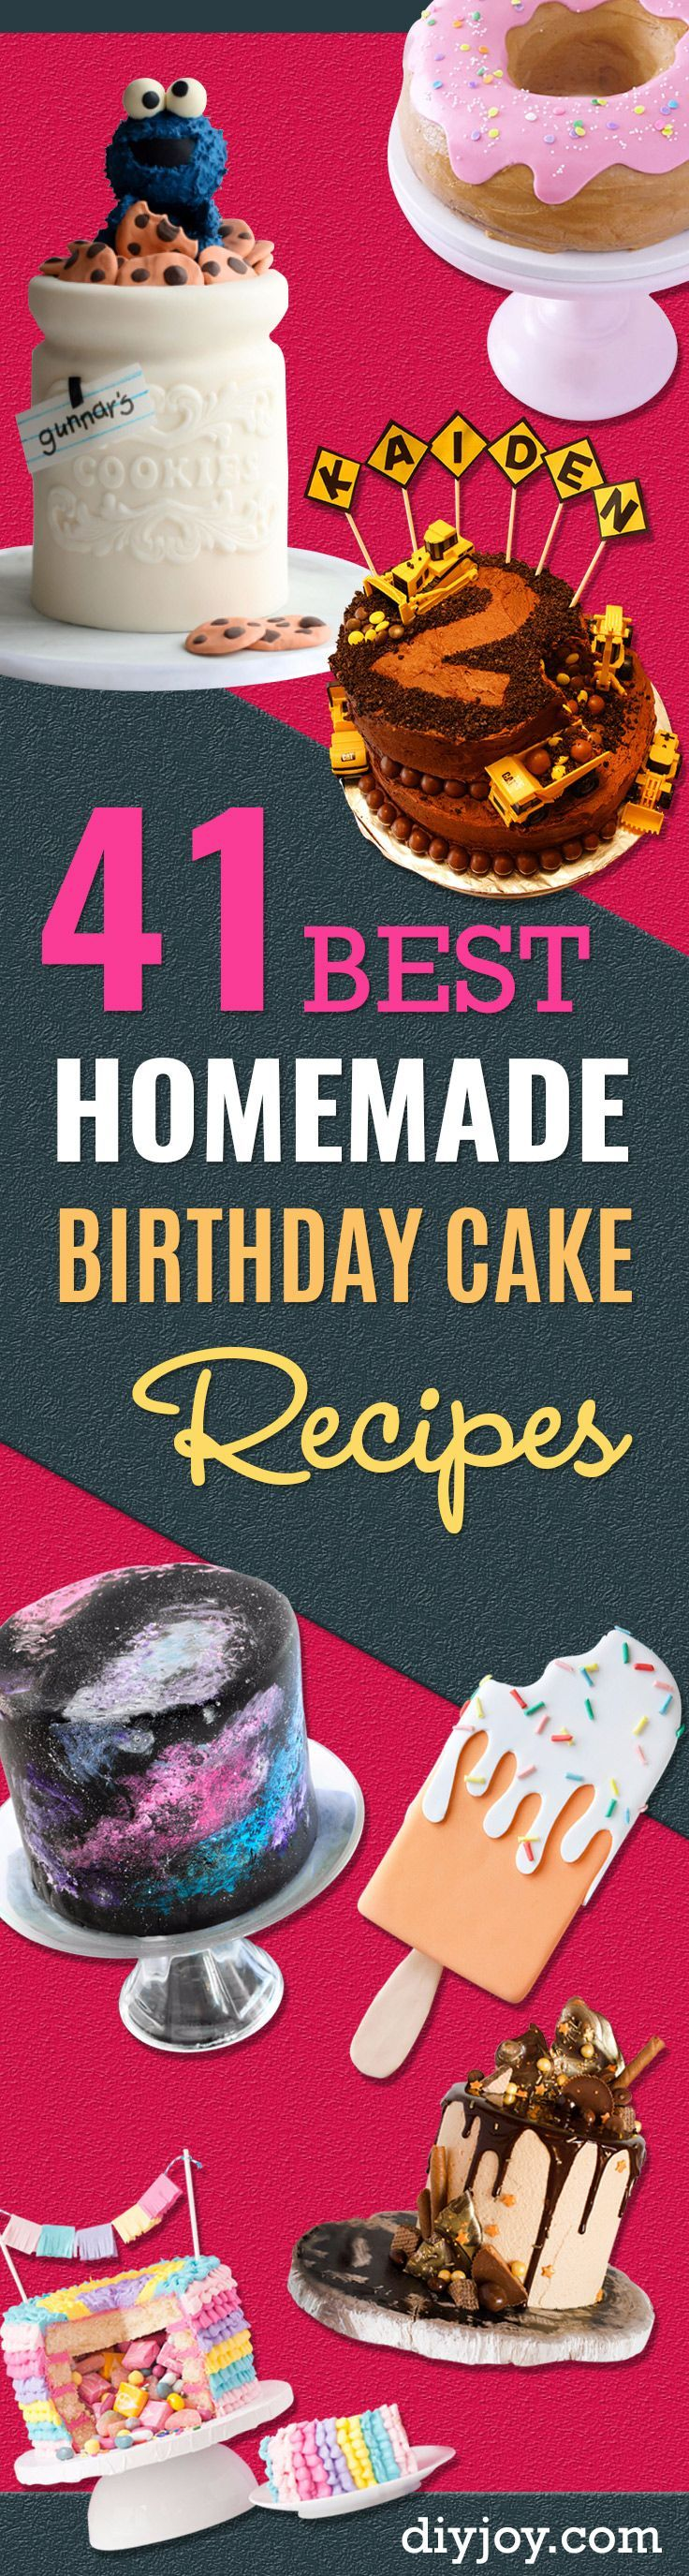 41 Best Homemade Birthday Cake Recipes - Birthday Cake Recipes From Scratch, Delicious Birthday Cake Recipes To Make, Quick And Easy Birthday Cake Recipes, Awesome Birthday Cake Ideas http://diyjoy.com/best-birthday-cake-recipes